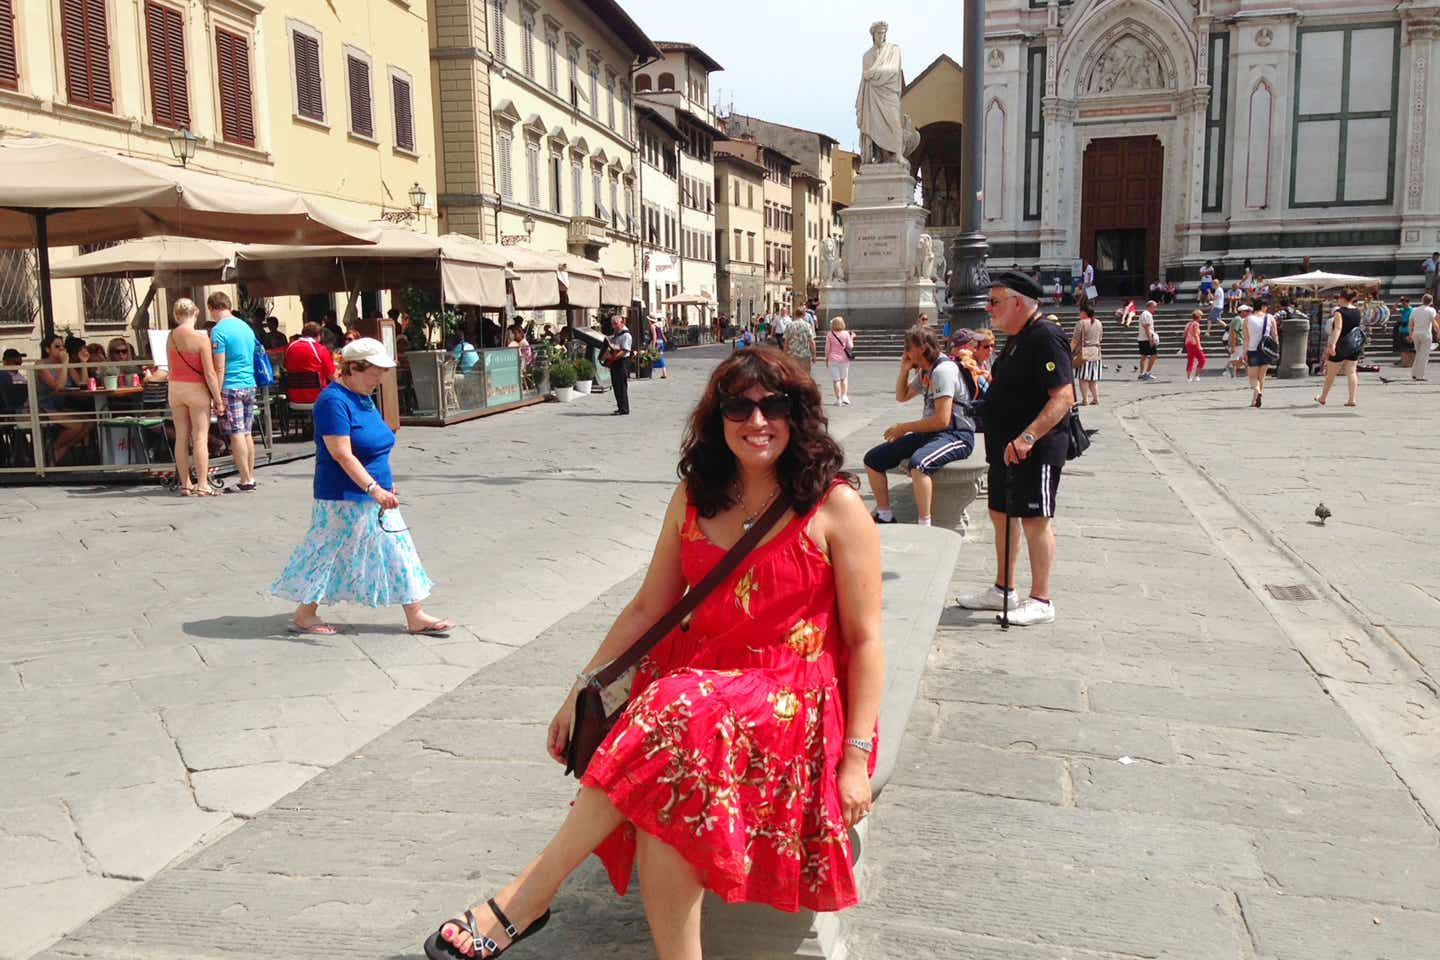 Author, Jennifer Probst, sits on a bench in the middle of Venice wearing a red sundress and sunglasses with a black bag slung across her shoulder.